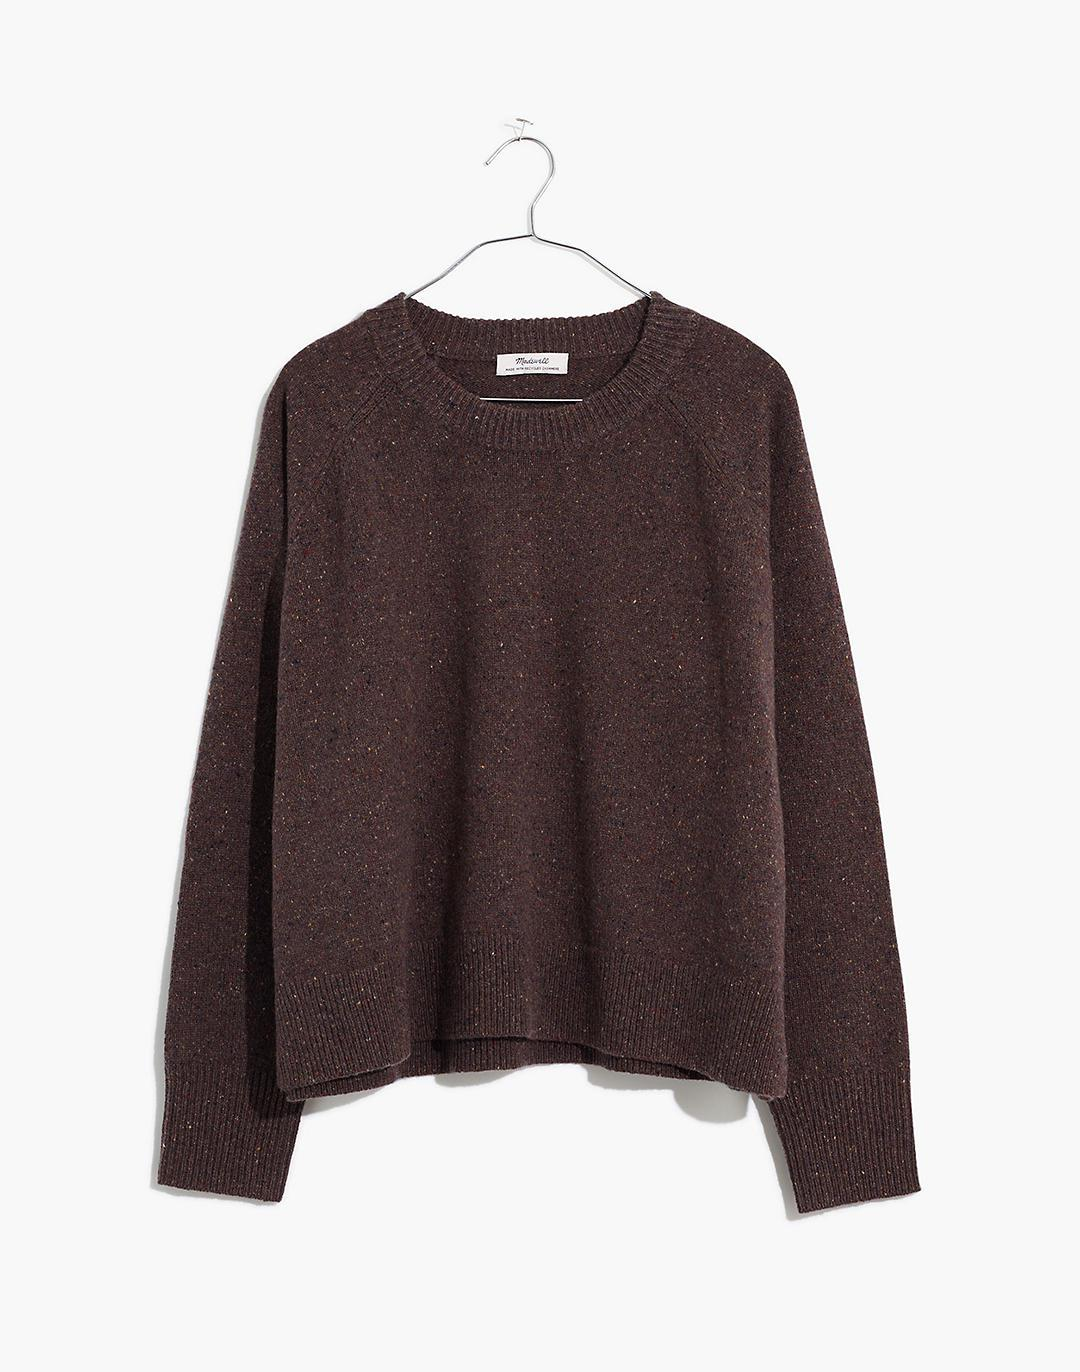 Plus Donegal (Re)sourced Cashmere Crewneck Sweater